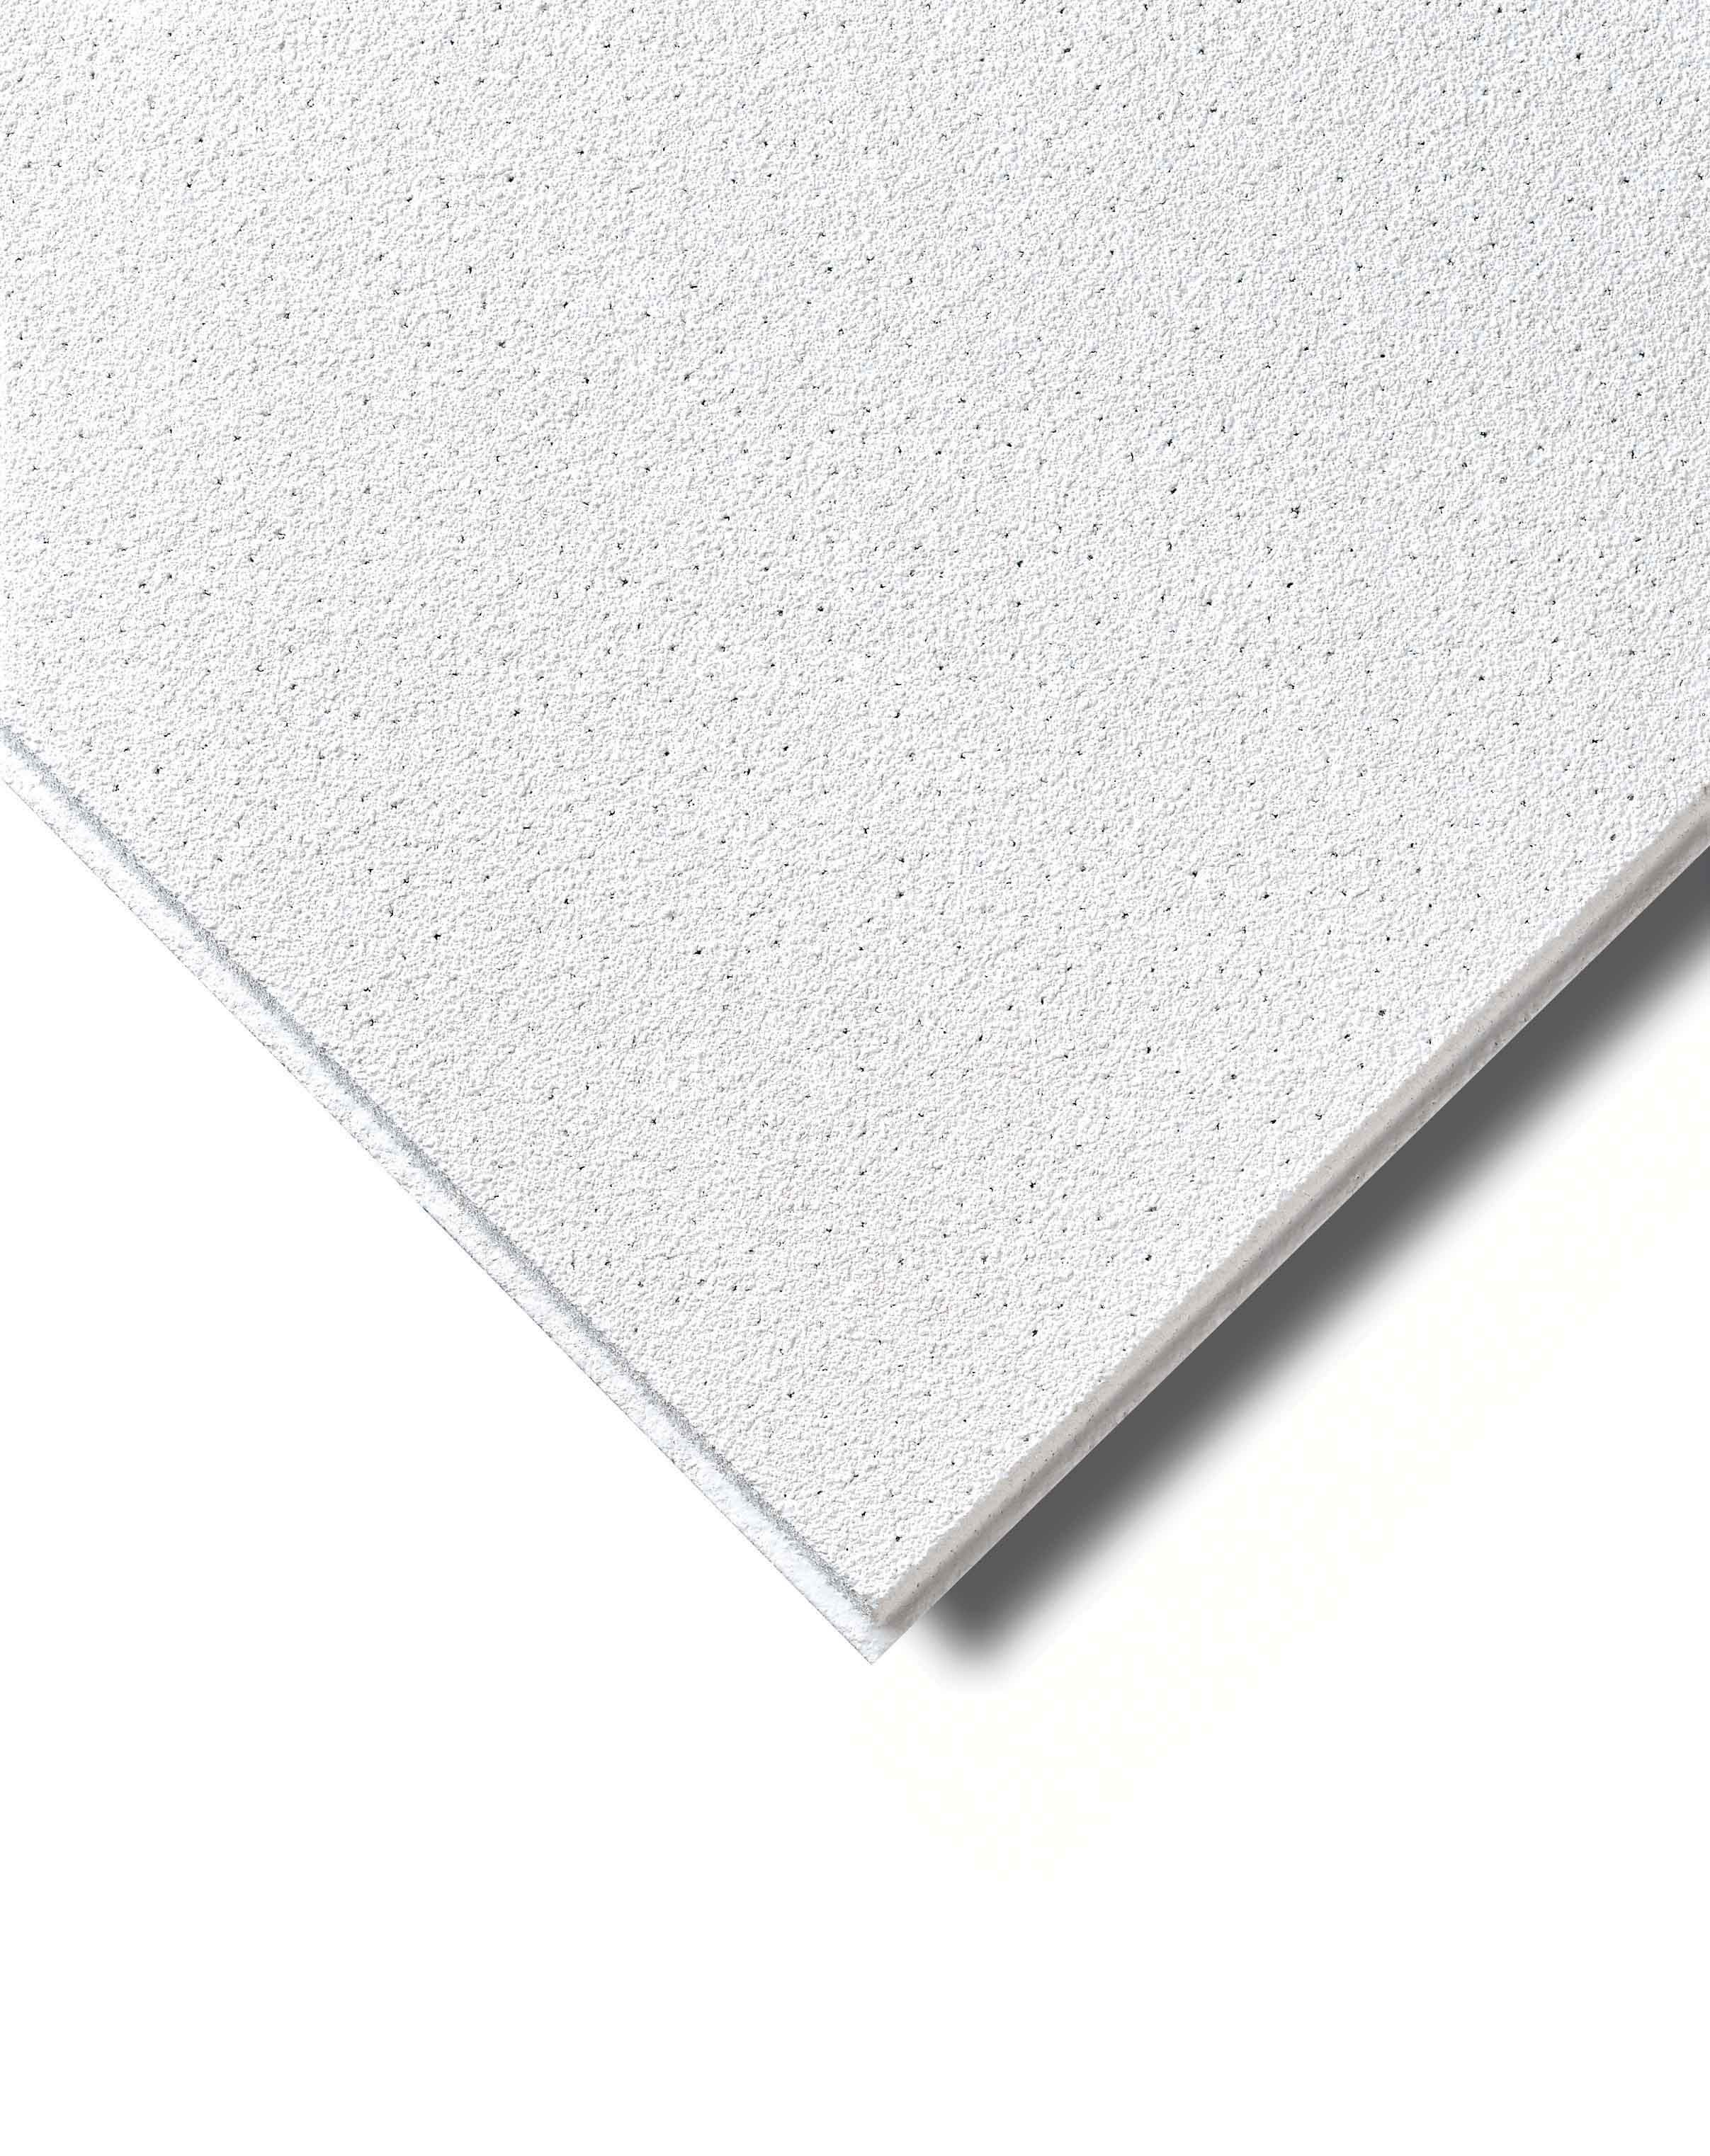 Armstrong ceiling tiles dune max httpcreativechairsandtables armstrong ceiling tiles dune max dailygadgetfo Image collections